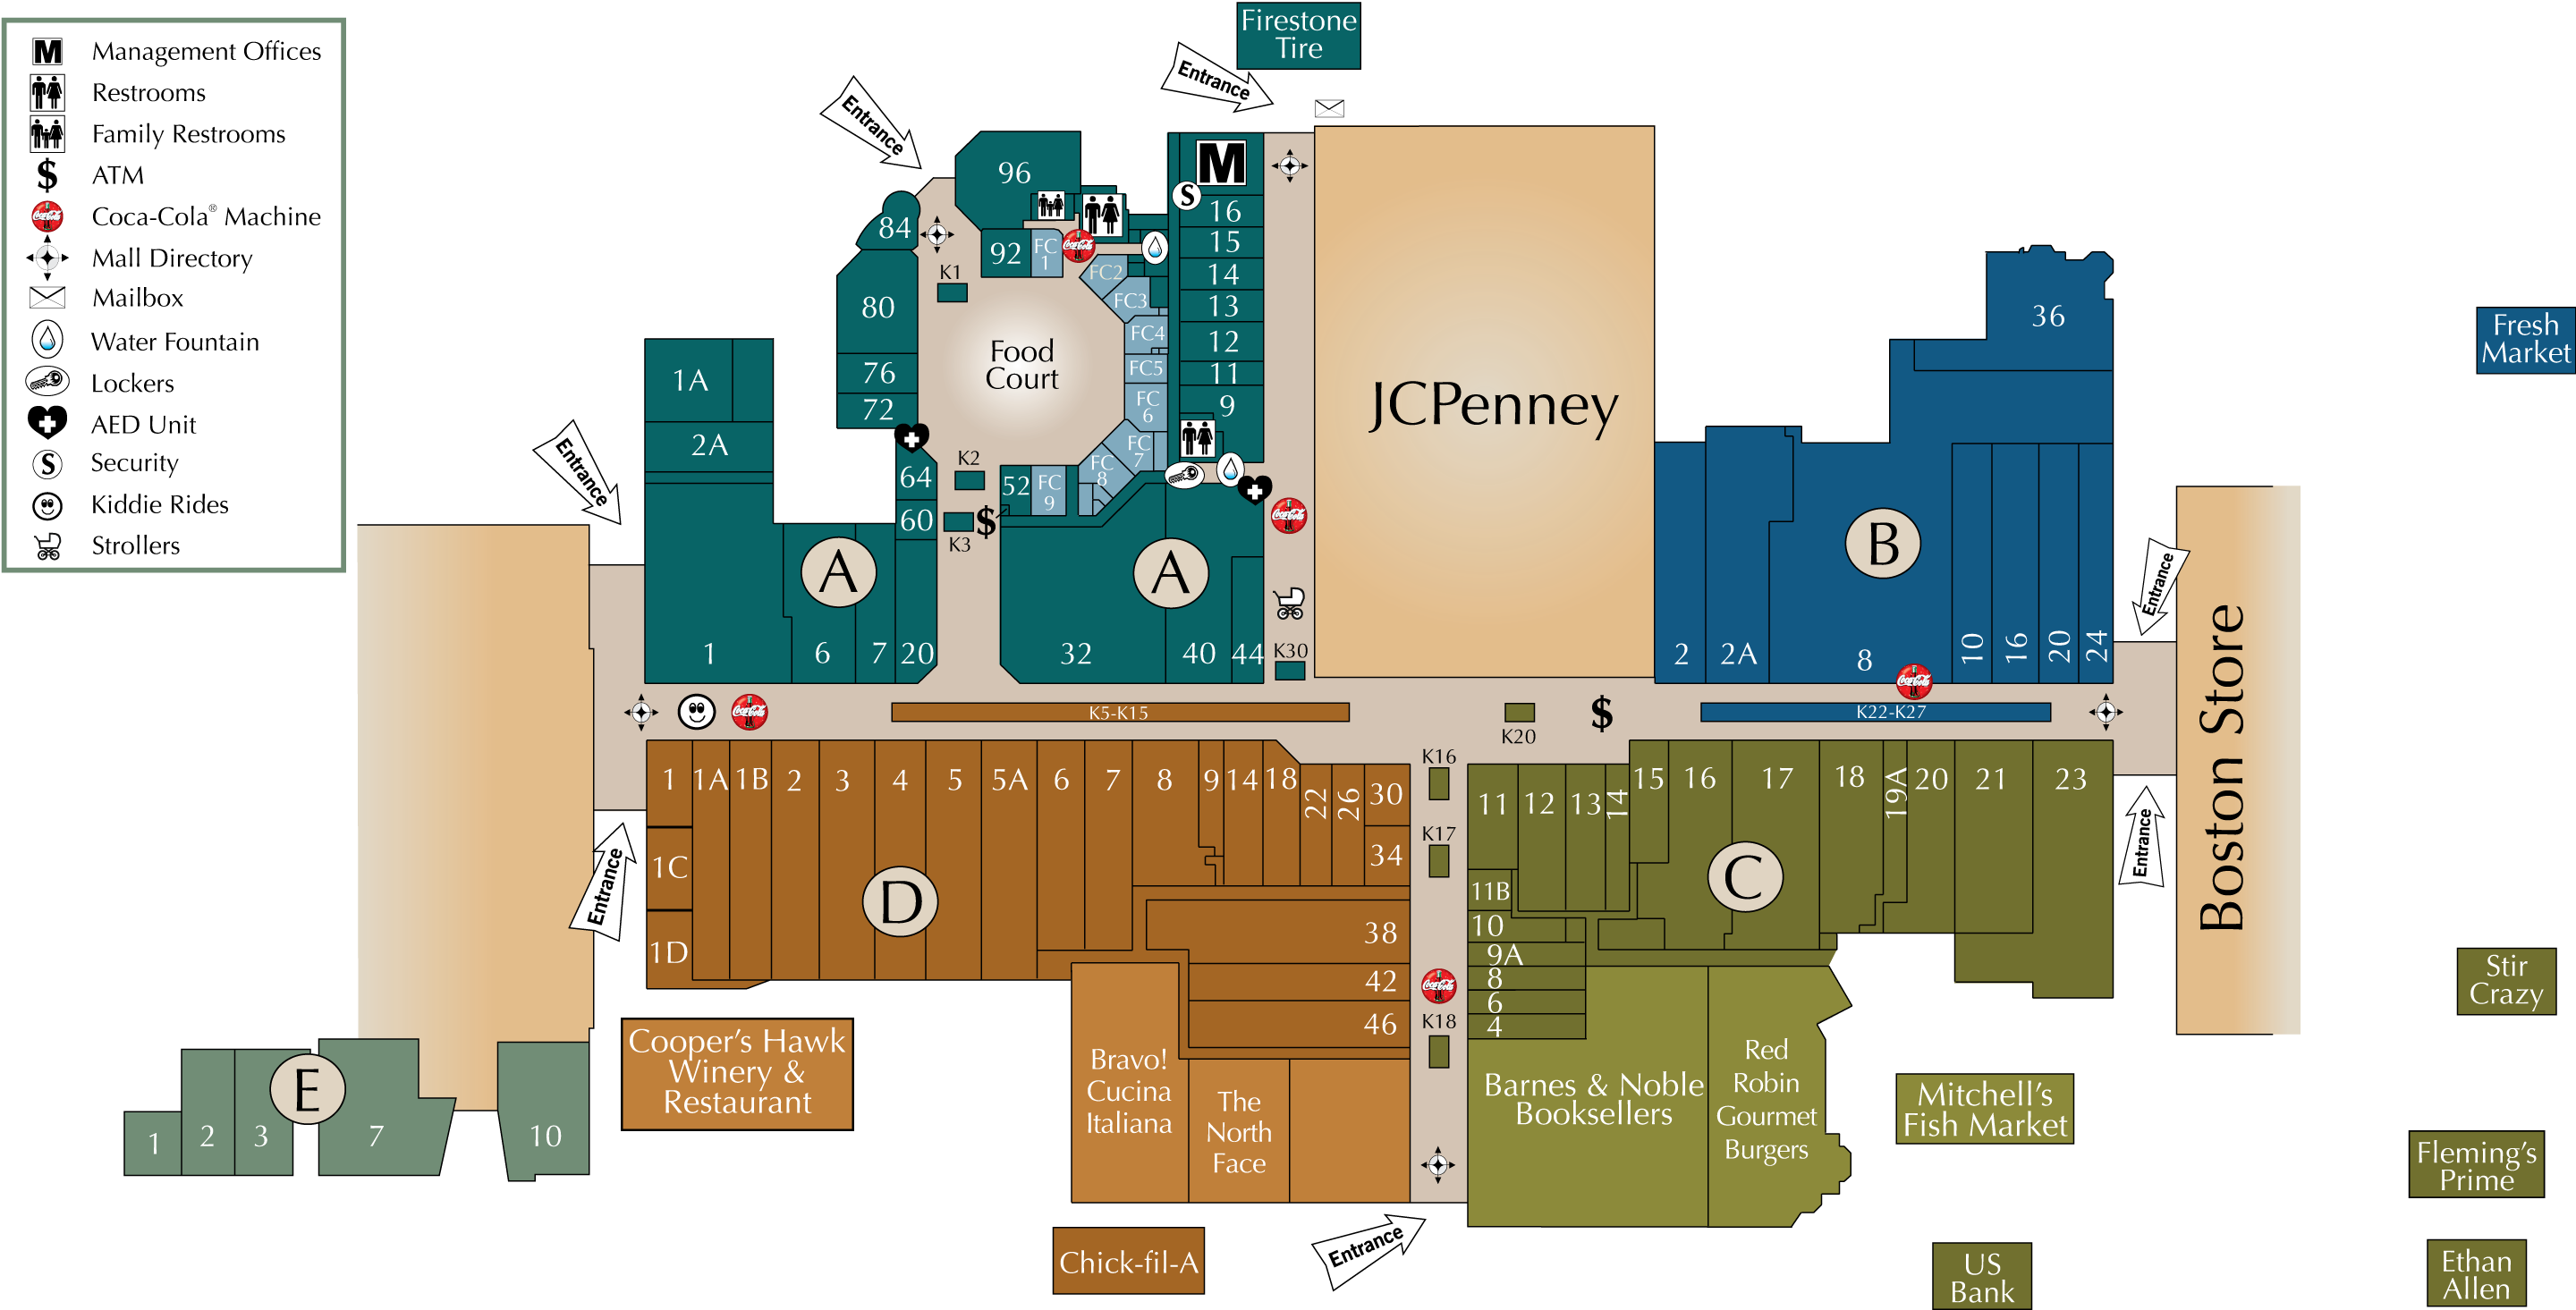 Mall Directory | Brookfield Square